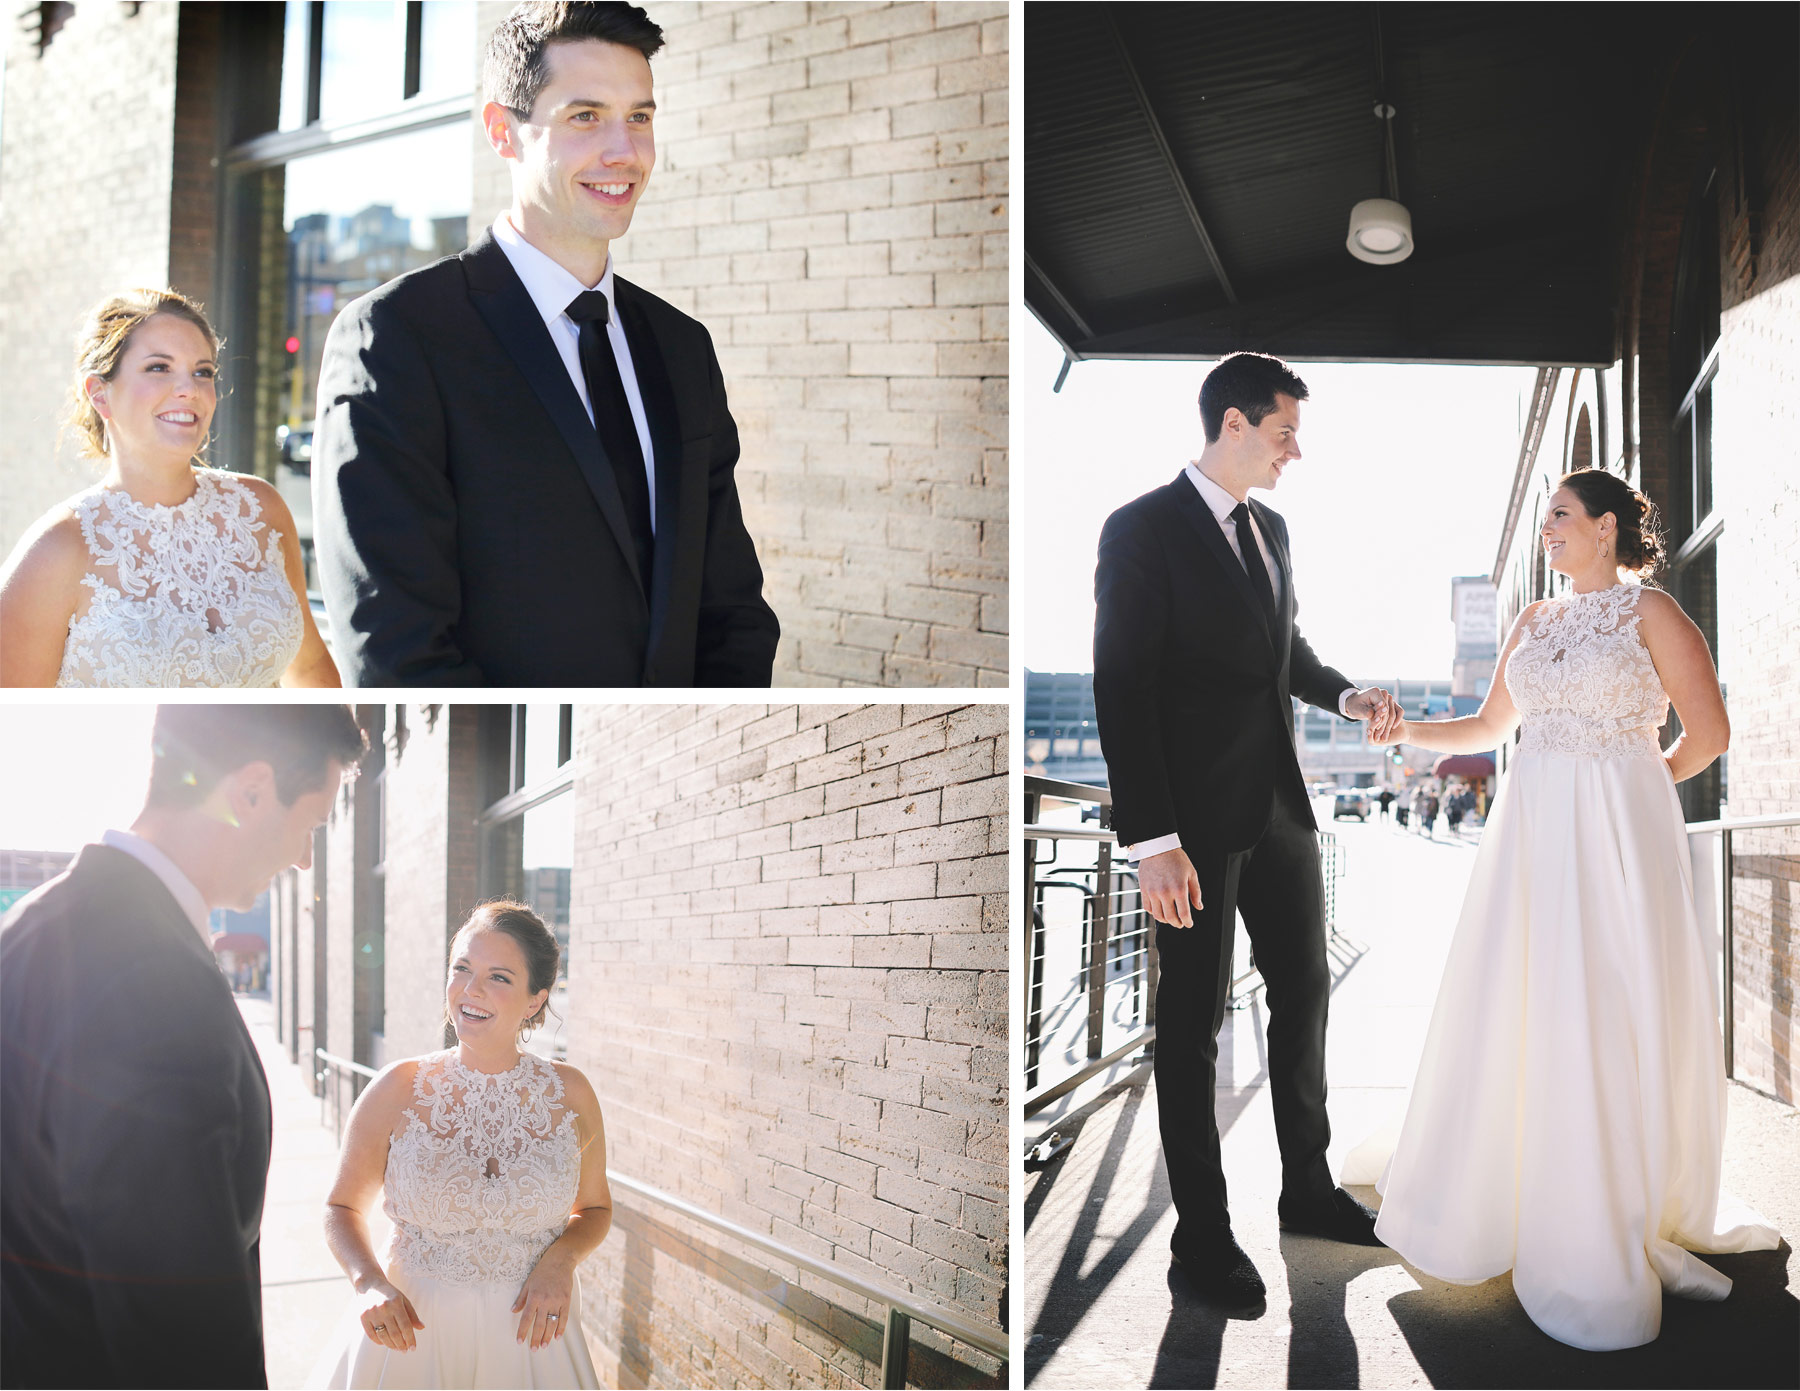 04-Minneapolis-Minnesota-Wedding-Photographer-Vick-Photography-First-Look-Downtown-Carrie-and-August.jpg